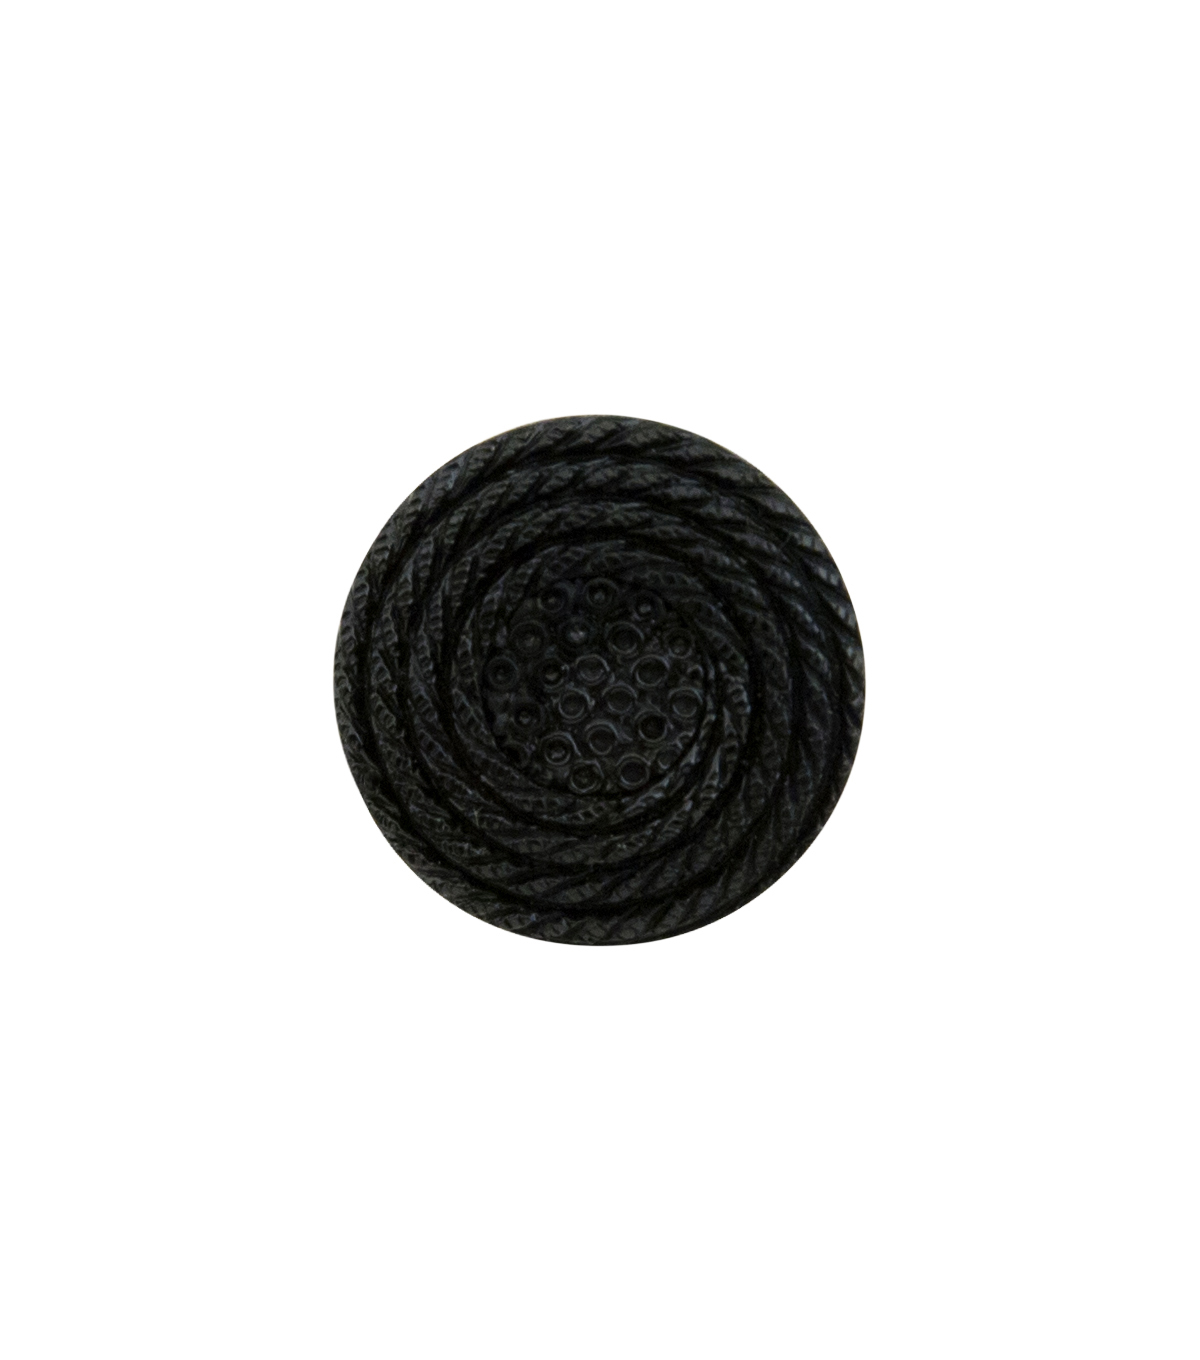 La Mode 3 pk 0.63\u0027\u0027 Round Woven Shank Buttons-Black